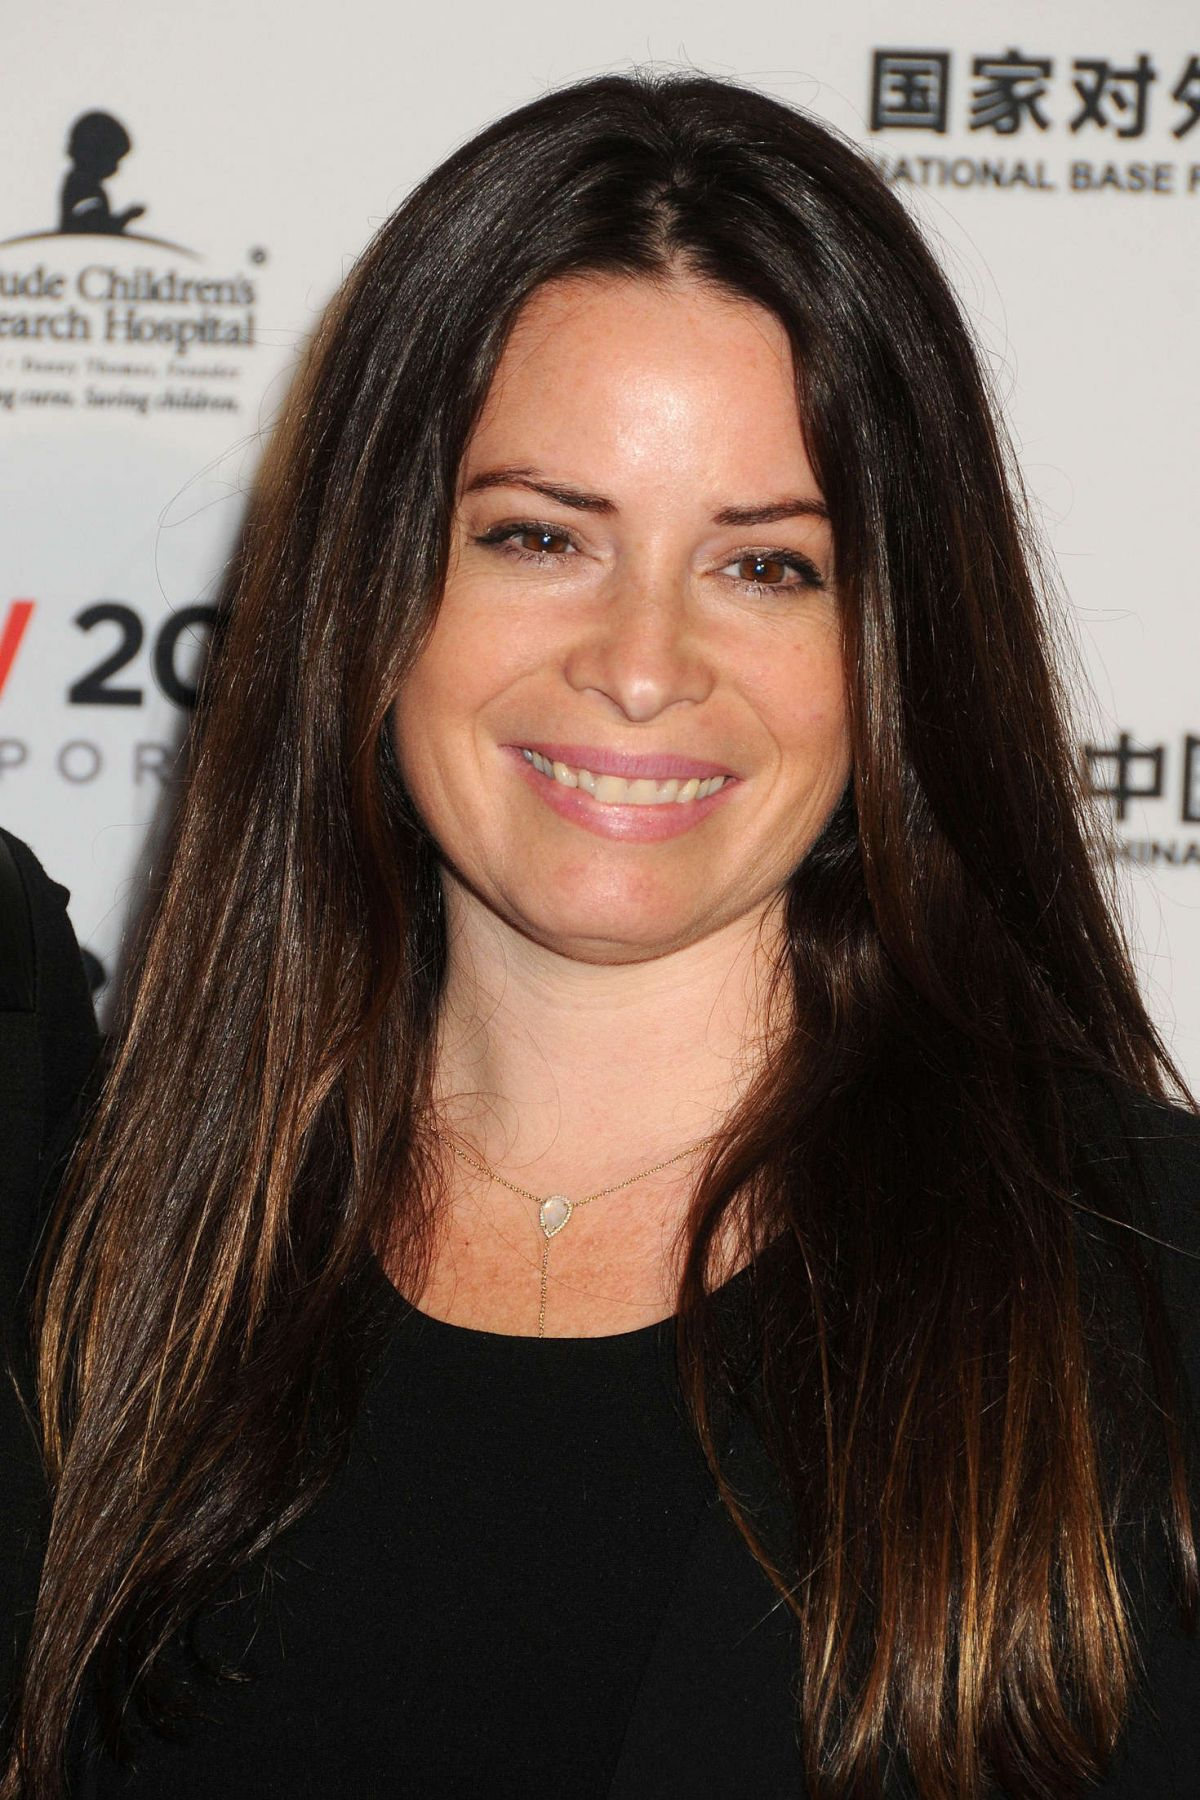 Holly Marie Combs At LA Art Show and Los Angeles Fine Art Show